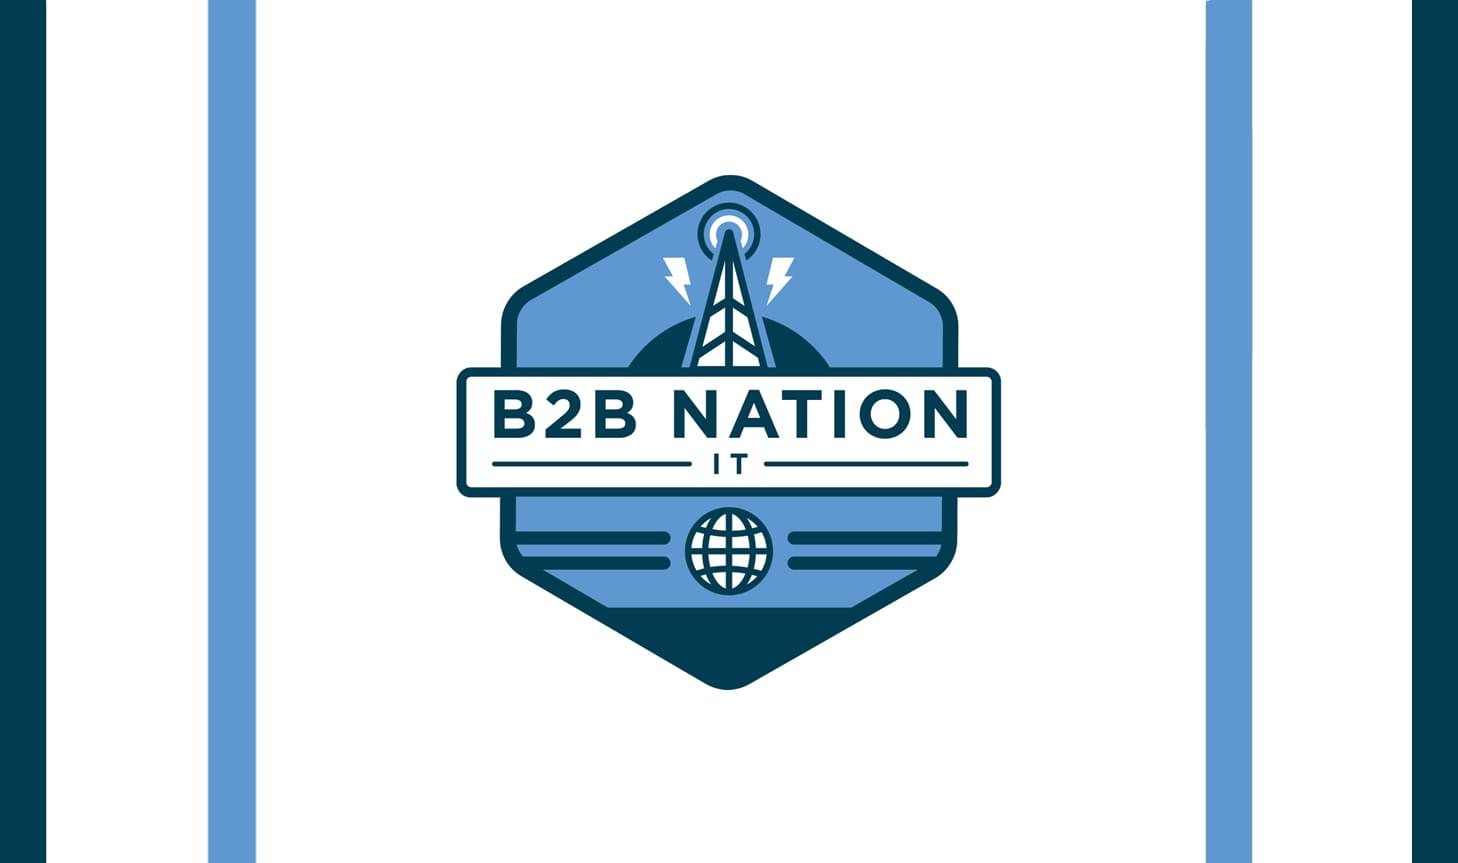 b2b nation it